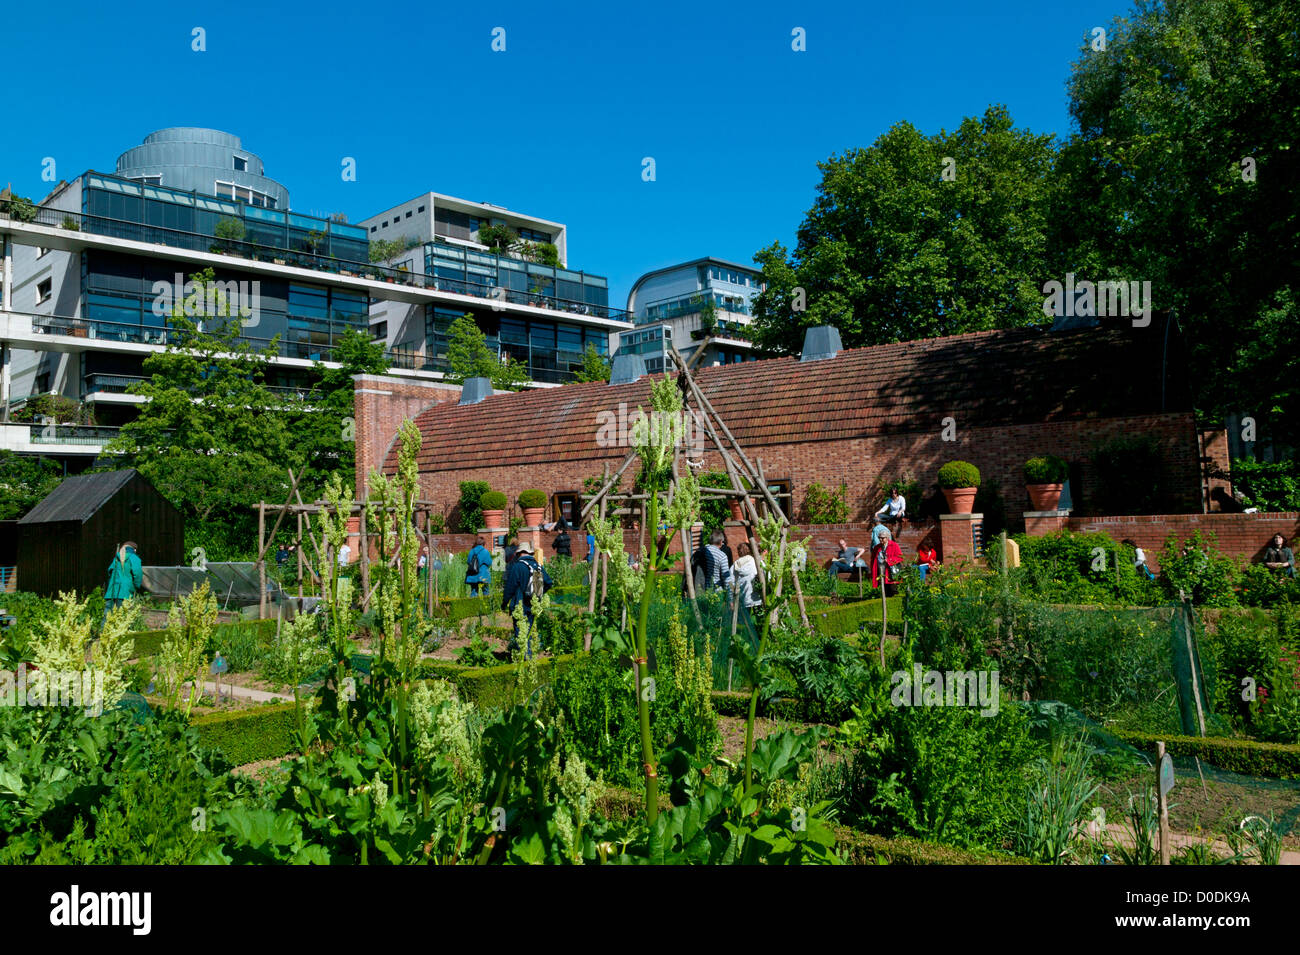 The Park Of Bercy, Paris, France Stock Photo